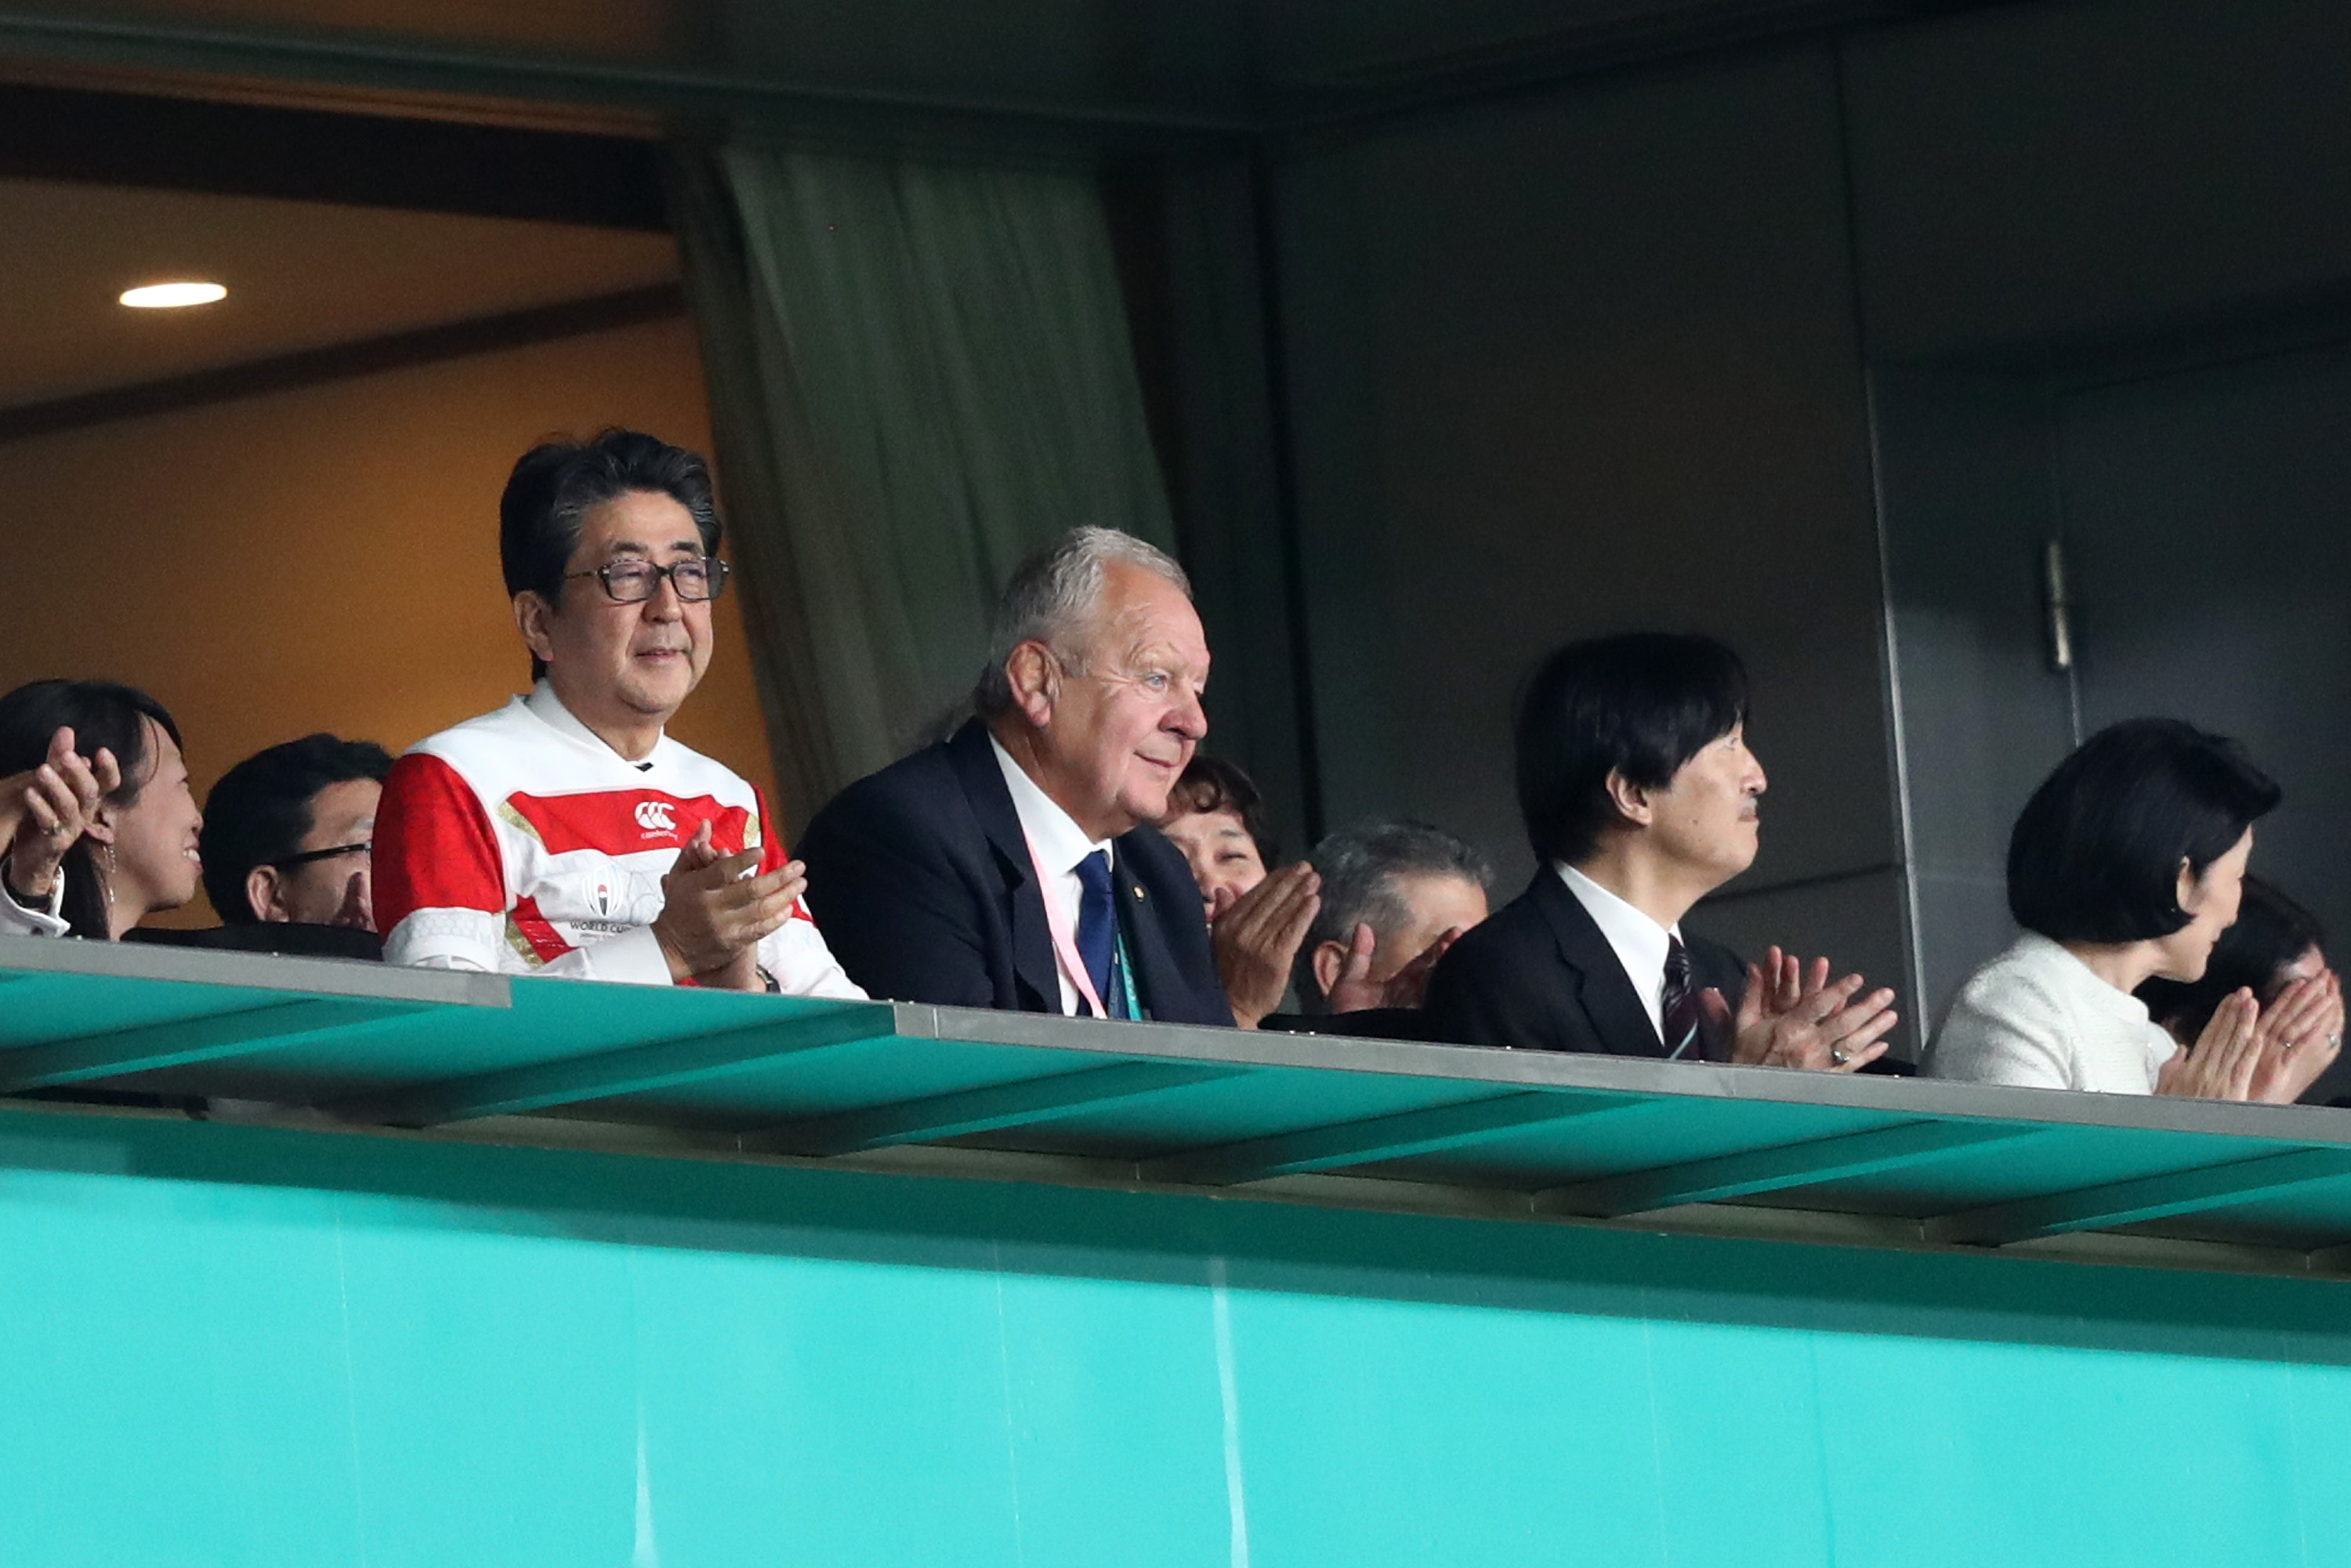 Japanese Prime Minister Shinzo Abe applauds his country's efforts against Russia.